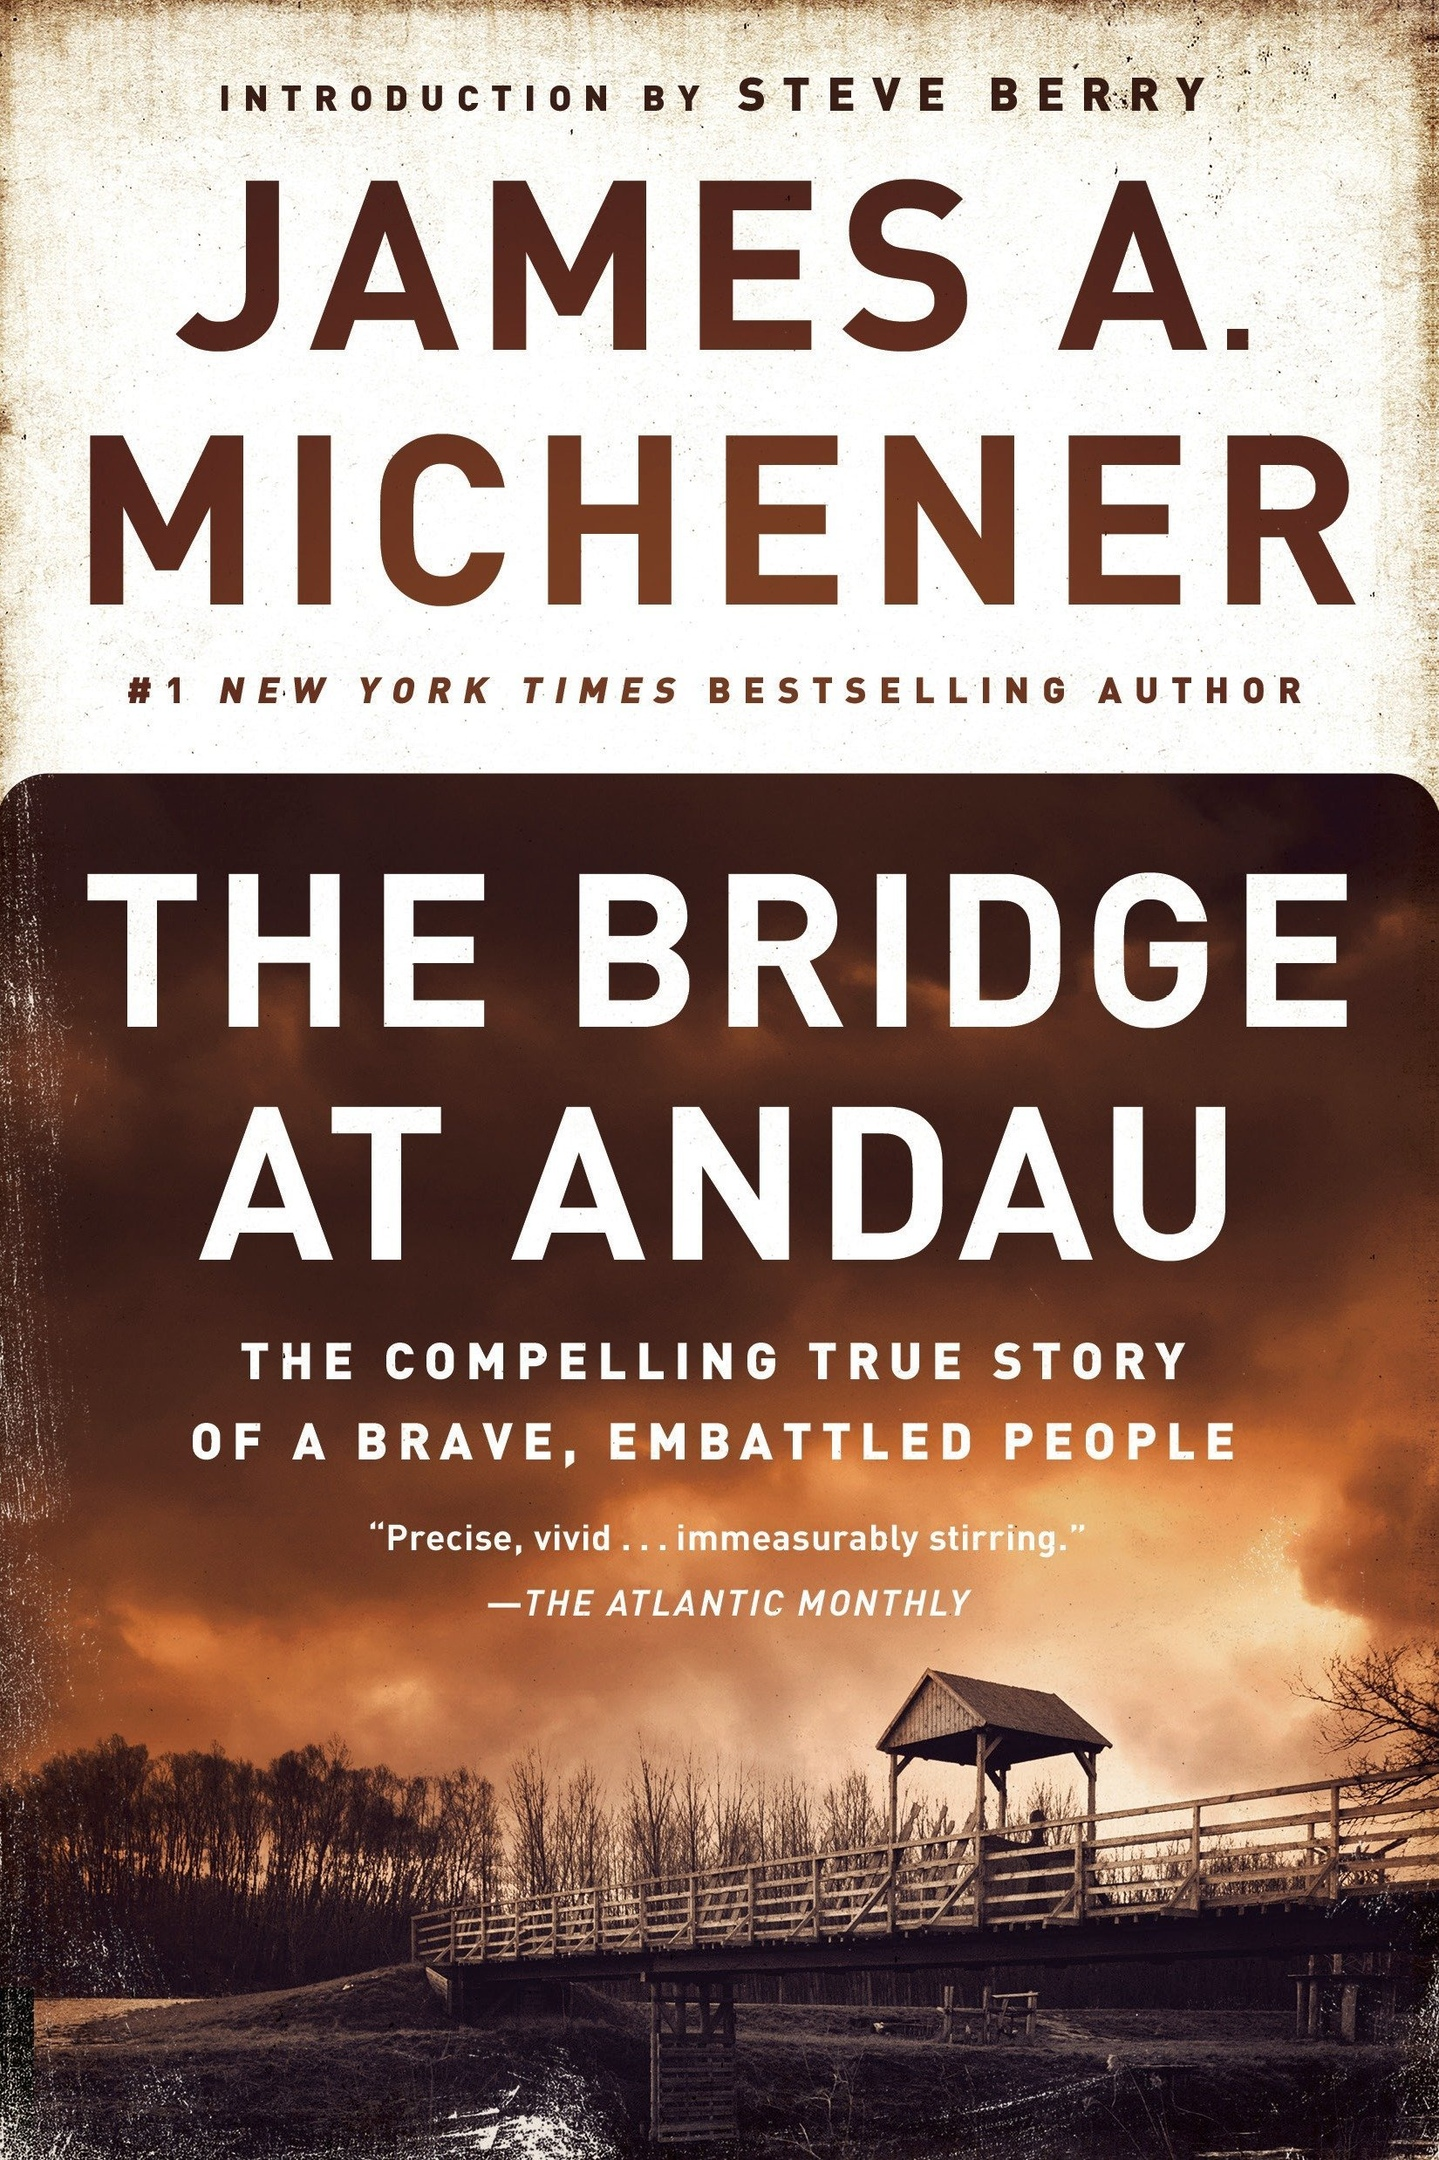 James A. Michener – The Bridge At